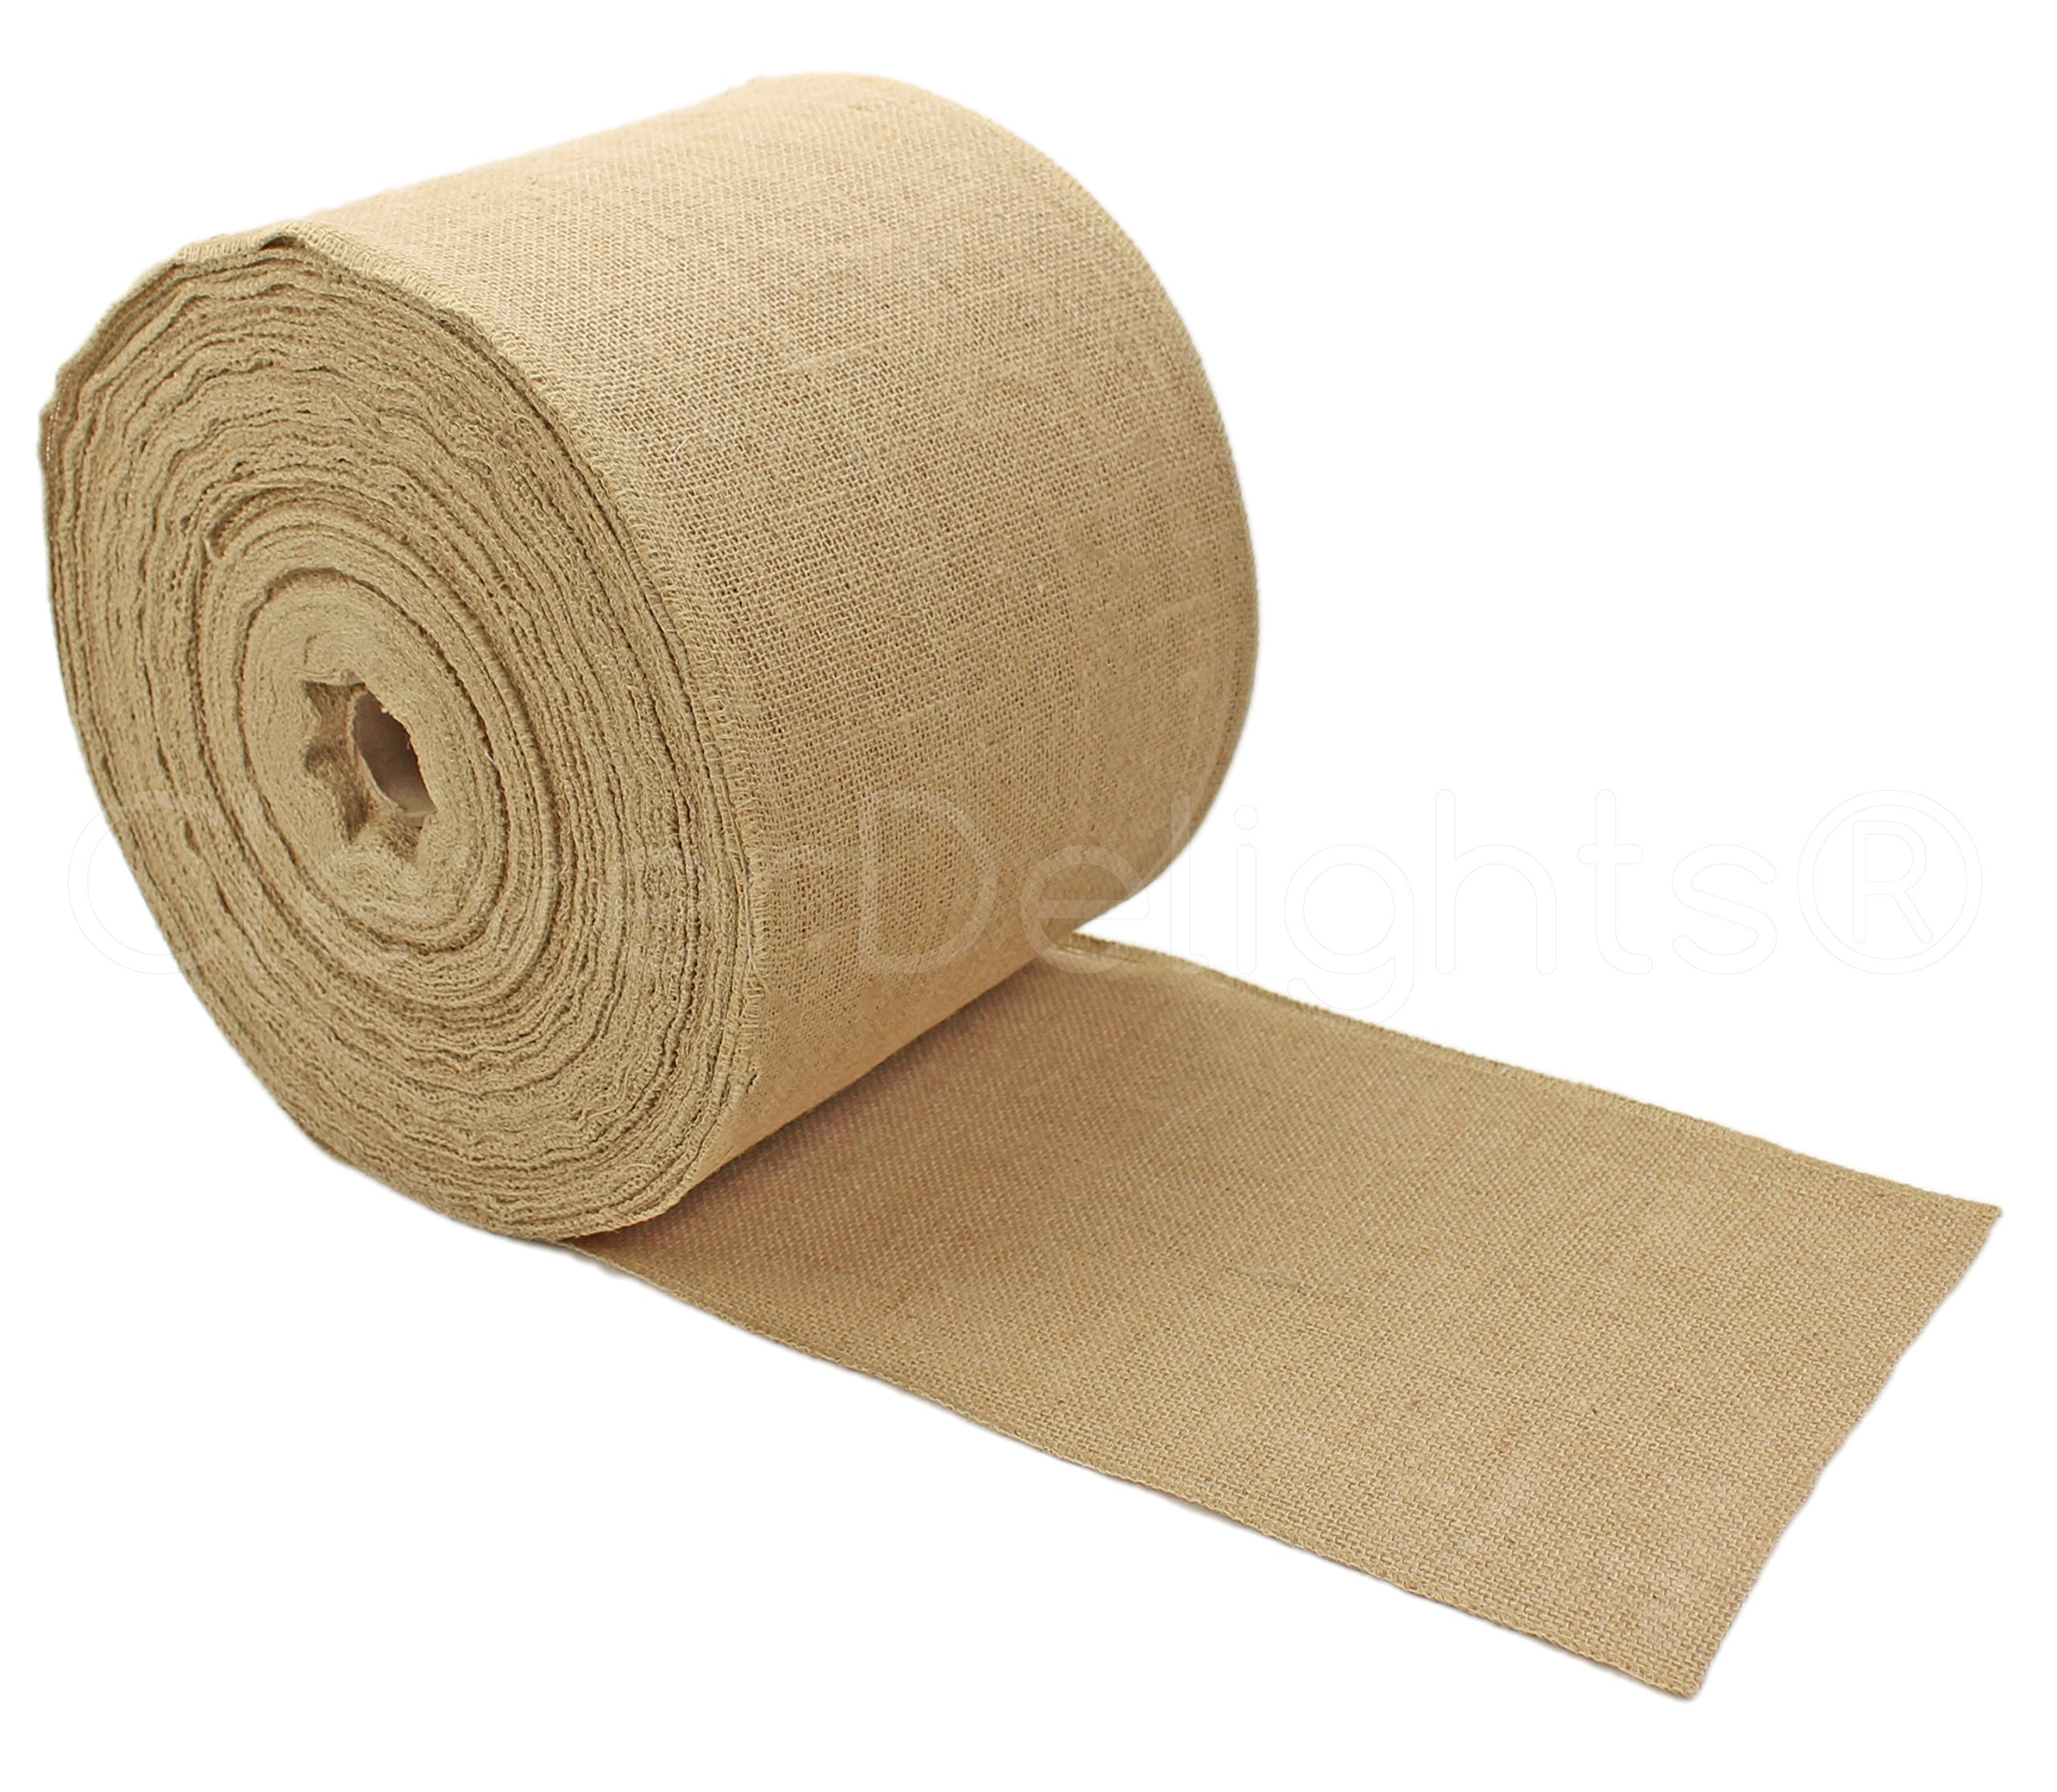 CleverDelights 9'' Premium Burlap Roll - 100 Yards - No-Fray Finished Edges - Natural Jute Burlap Fabric